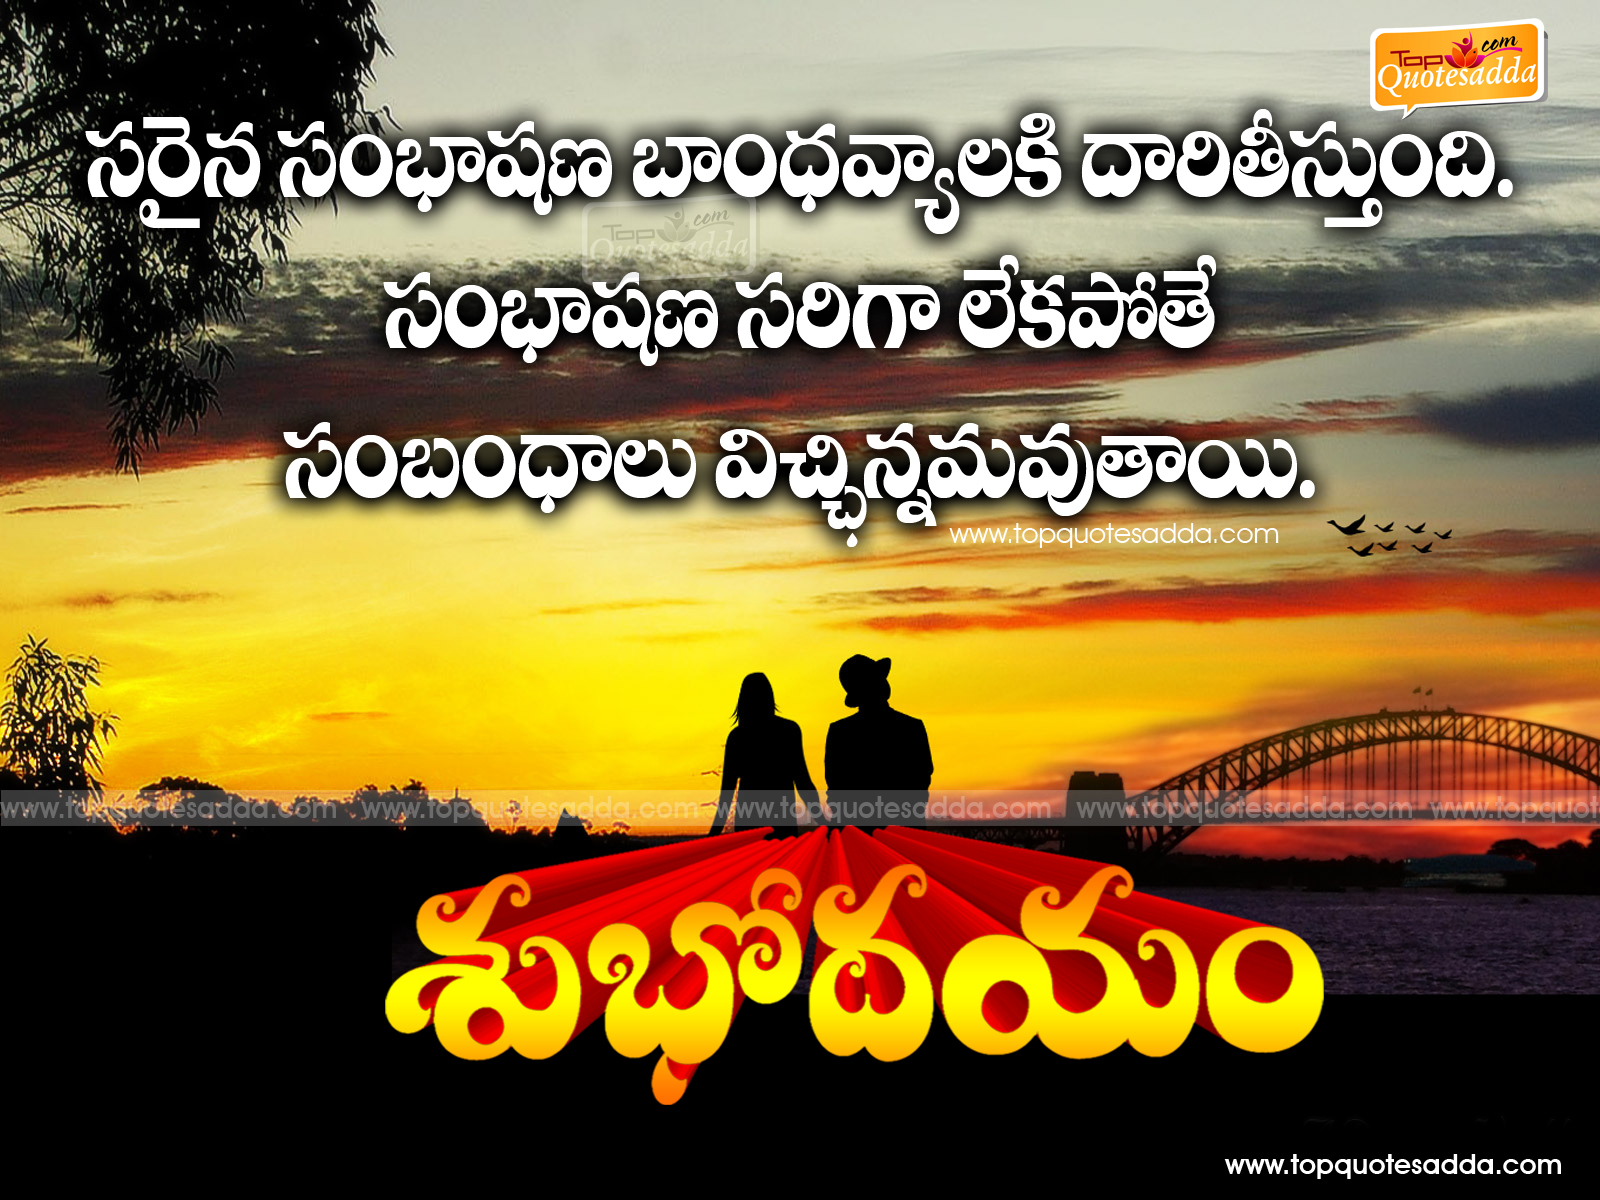 Best Saying Telugu Good Morning Quotes Hd Wallpapers For Facebook